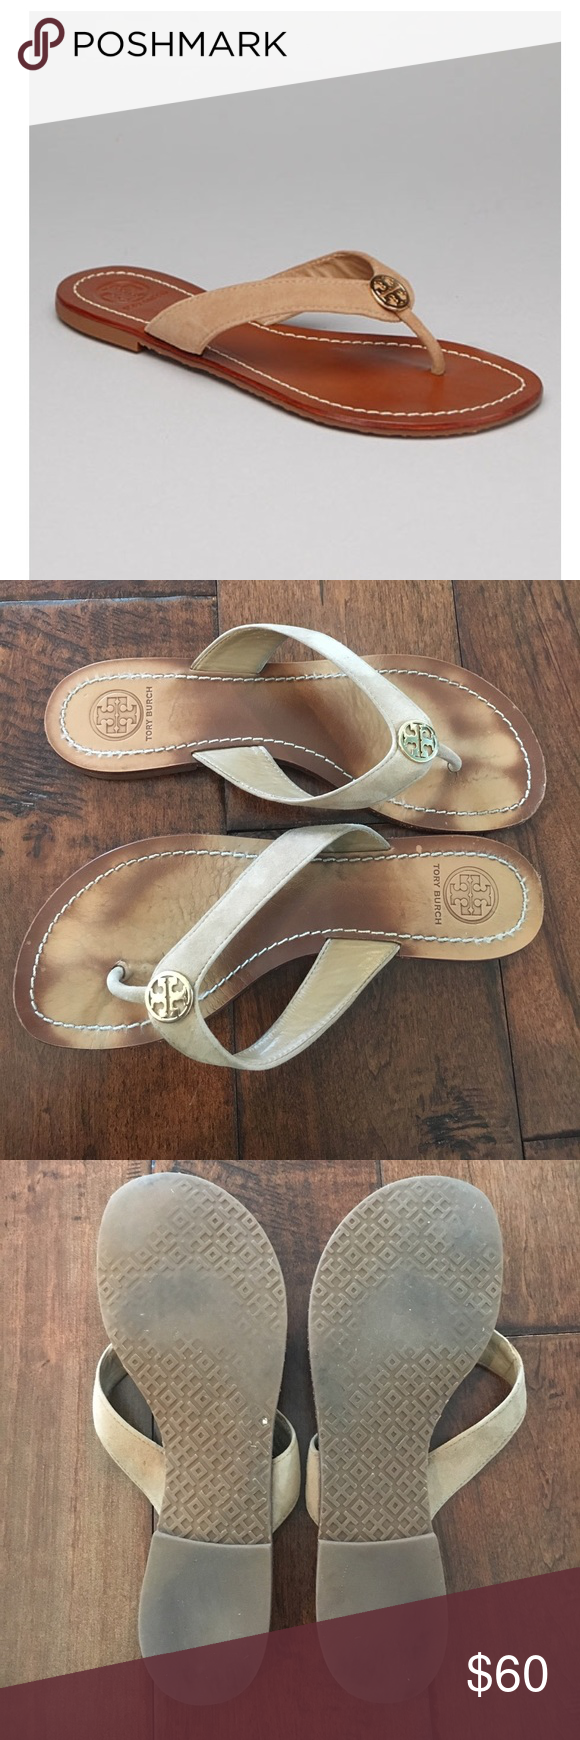 """Tory Burch Thora 2 Beige Suede Thong / Flip Flops Gently Worn with tons of life left!! Golden double """"T"""" medallion adorns the center of suede leather thong strap. Logo-stamped insole. Rubber sole. Comes with the Tory Burch shoe box and storage bag. Smoke and Pet Free home. All reasonable offers are welcome! Please make offer through offer button😊 Bundle and save $$$ Tory Burch Shoes Sandals"""